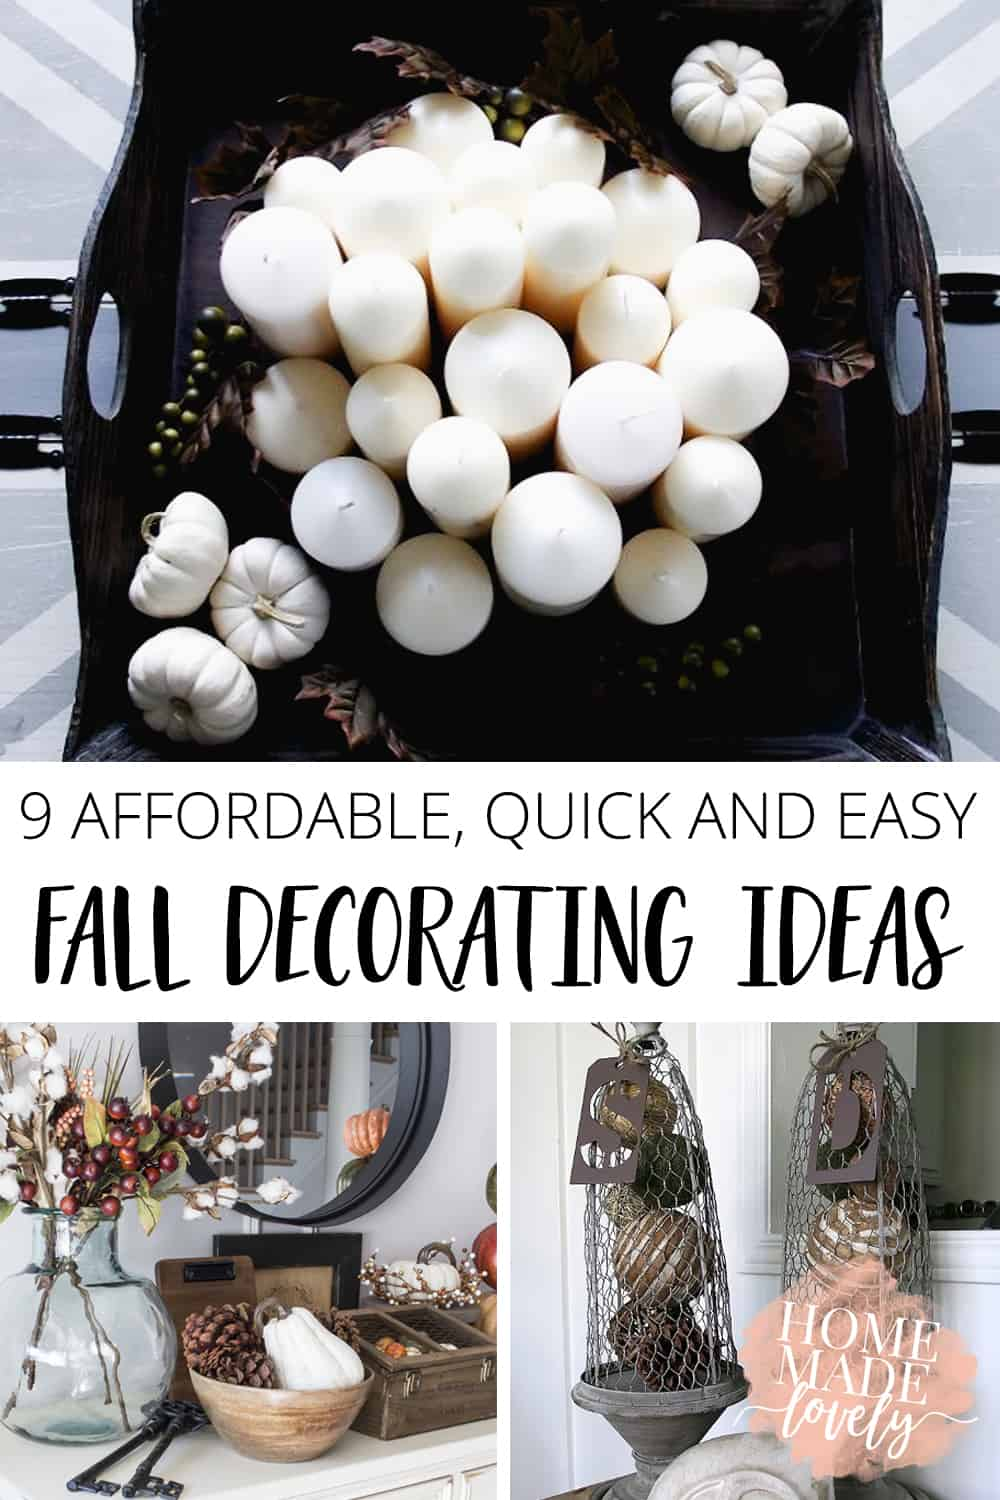 9 Affordable, Quick and Easy Fall Decorating Ideas